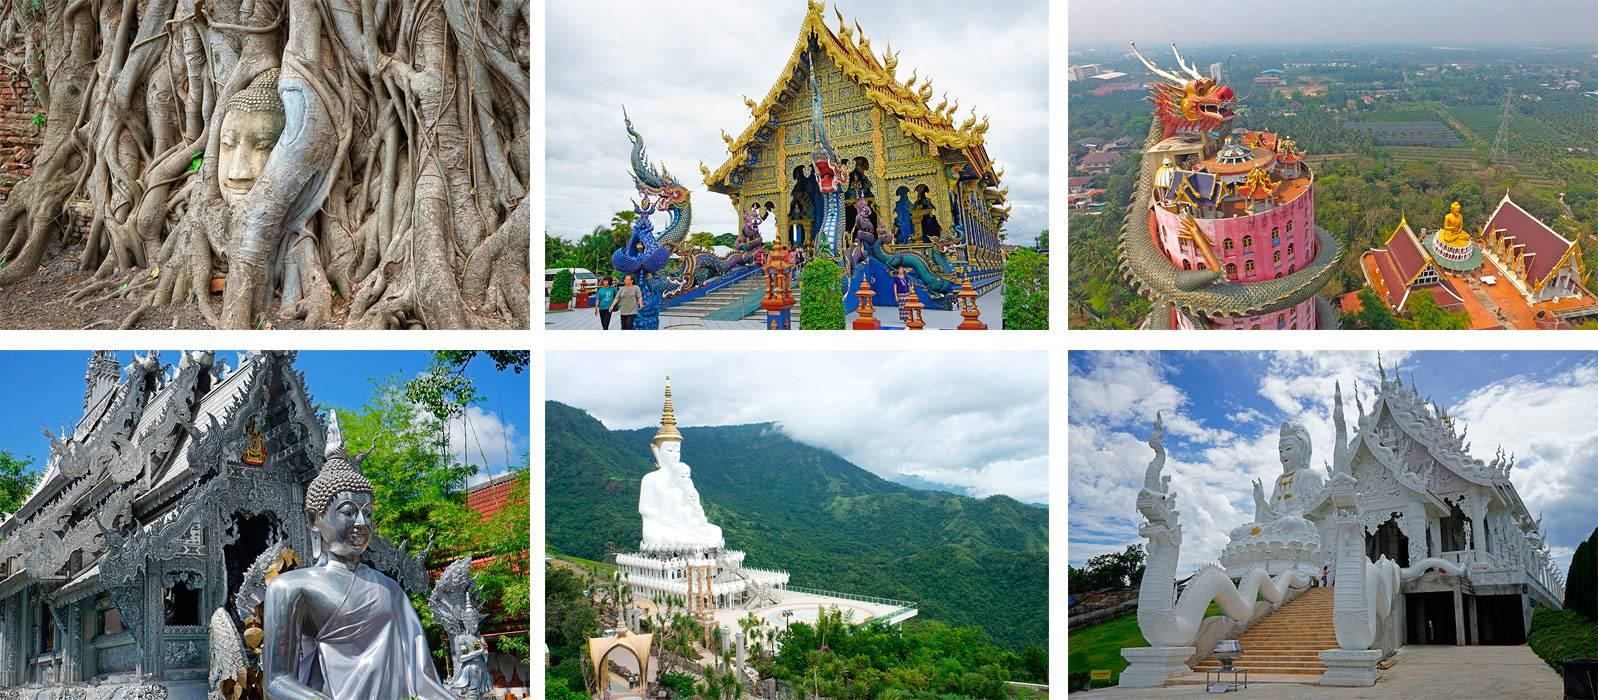 The 20 most original and amazing temples of Thailand